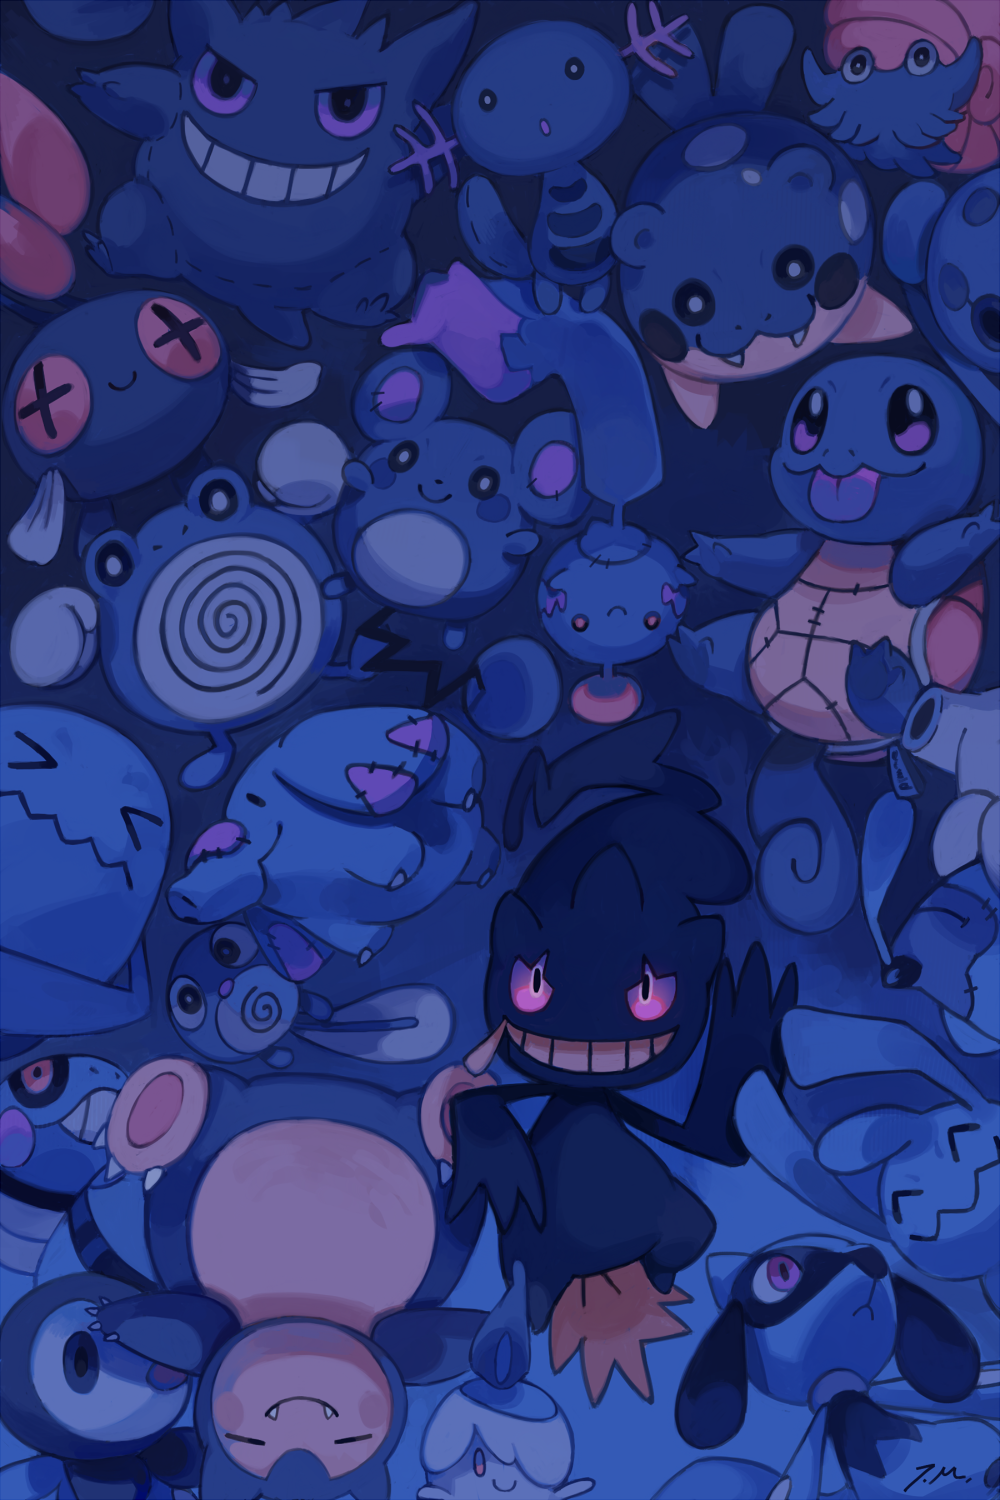 e621 ambiguous_gender azurill banette blue_theme bluekomadori body_zipper canine chimecho chinchou croagunk cubchoo doll feral gengar ghost group hi_res large_group legendary_pokémon litwick looking_at_viewer lying mammal mouth_zipper nintendo omanyte phanpy phione piplup pokémon pokémon_(species) poliwag poliwhirl red_eyes riolu smile snorlax spheal spirit squirtle video_games wobbuffet wooper wynaut zipper